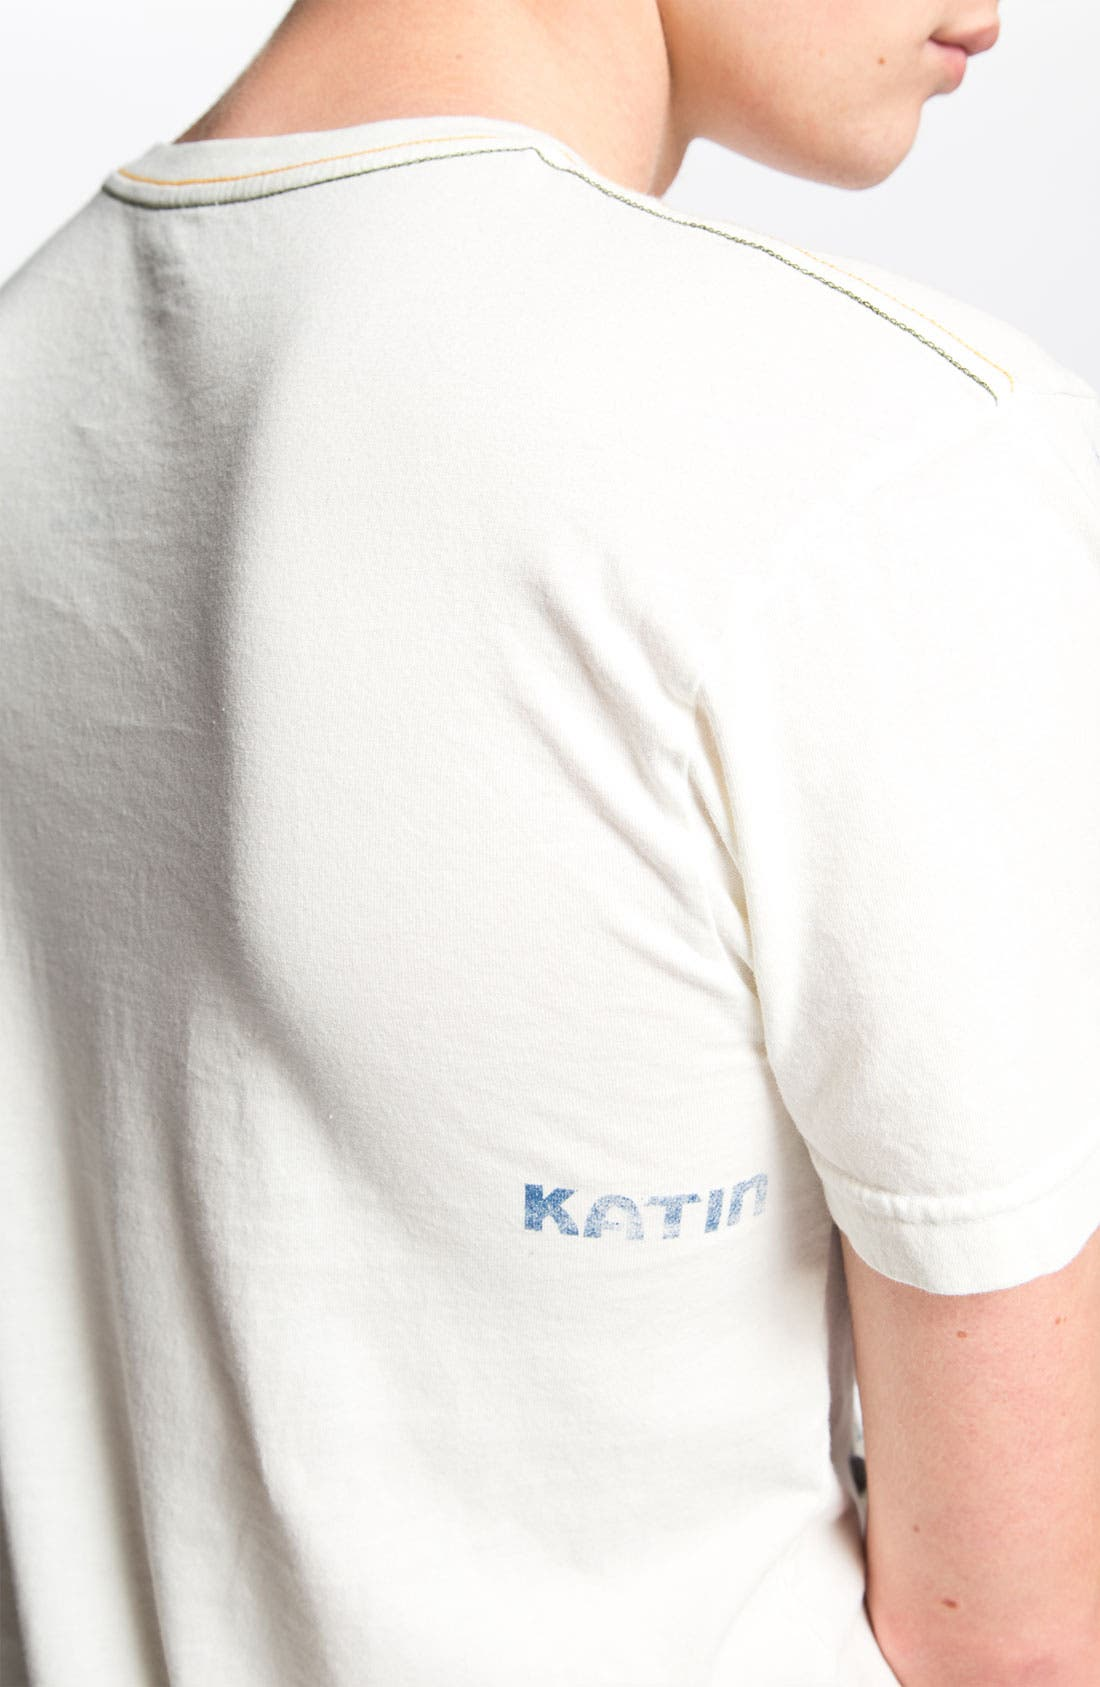 Alternate Image 3  - Katin 'Support' T-Shirt